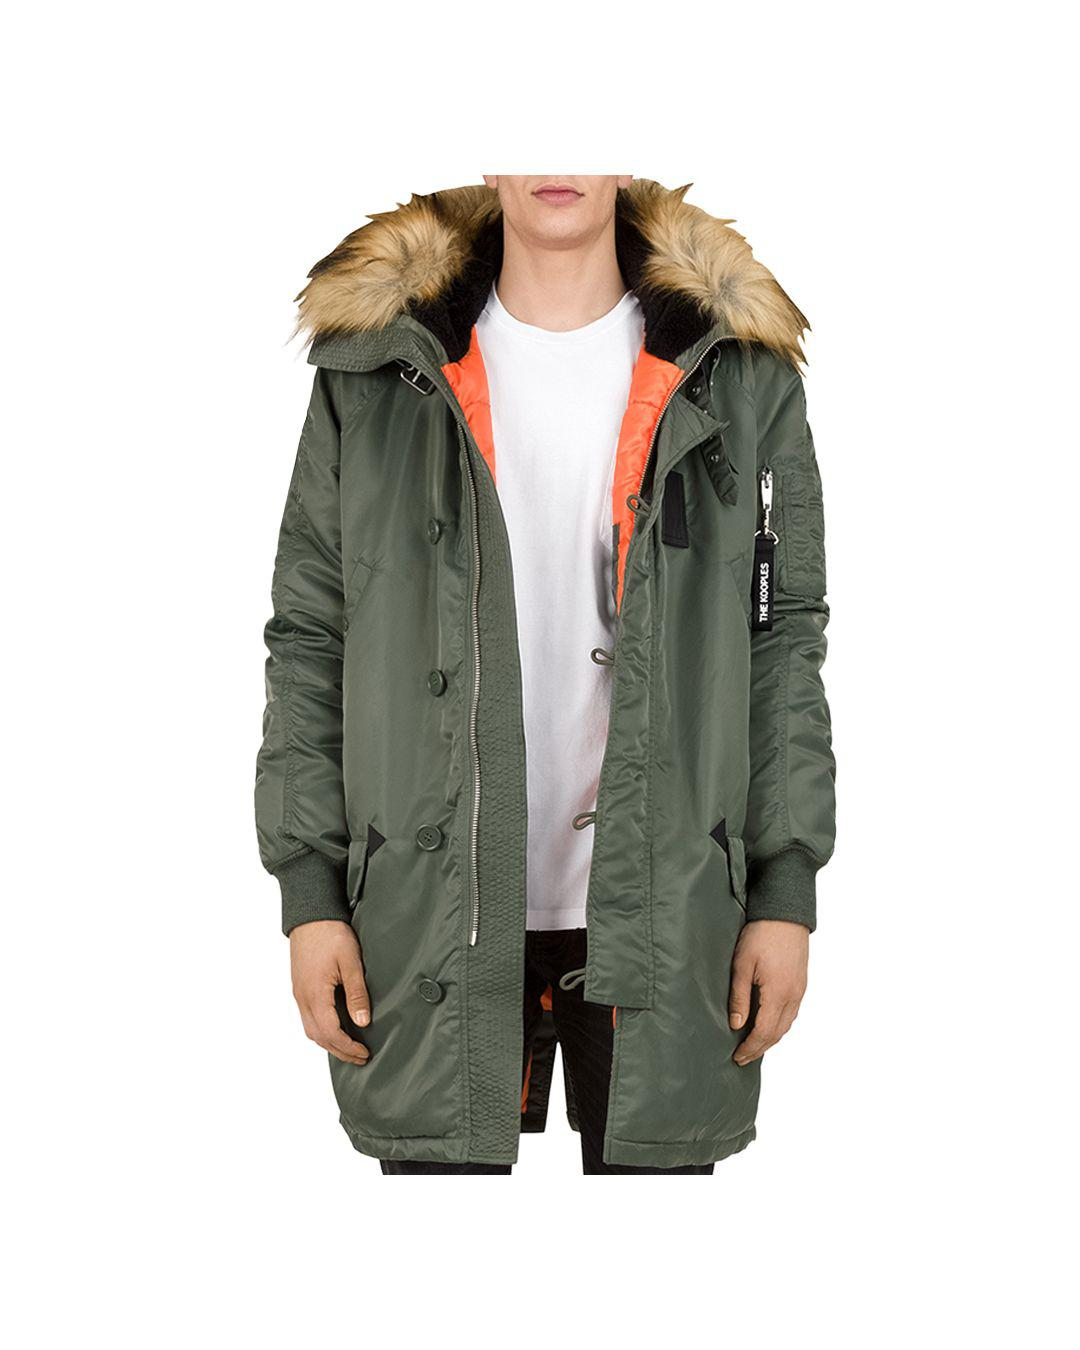 614927419a88 The Kooples Oversized Contrast-fabric Parka Jacket in Green for Men ...